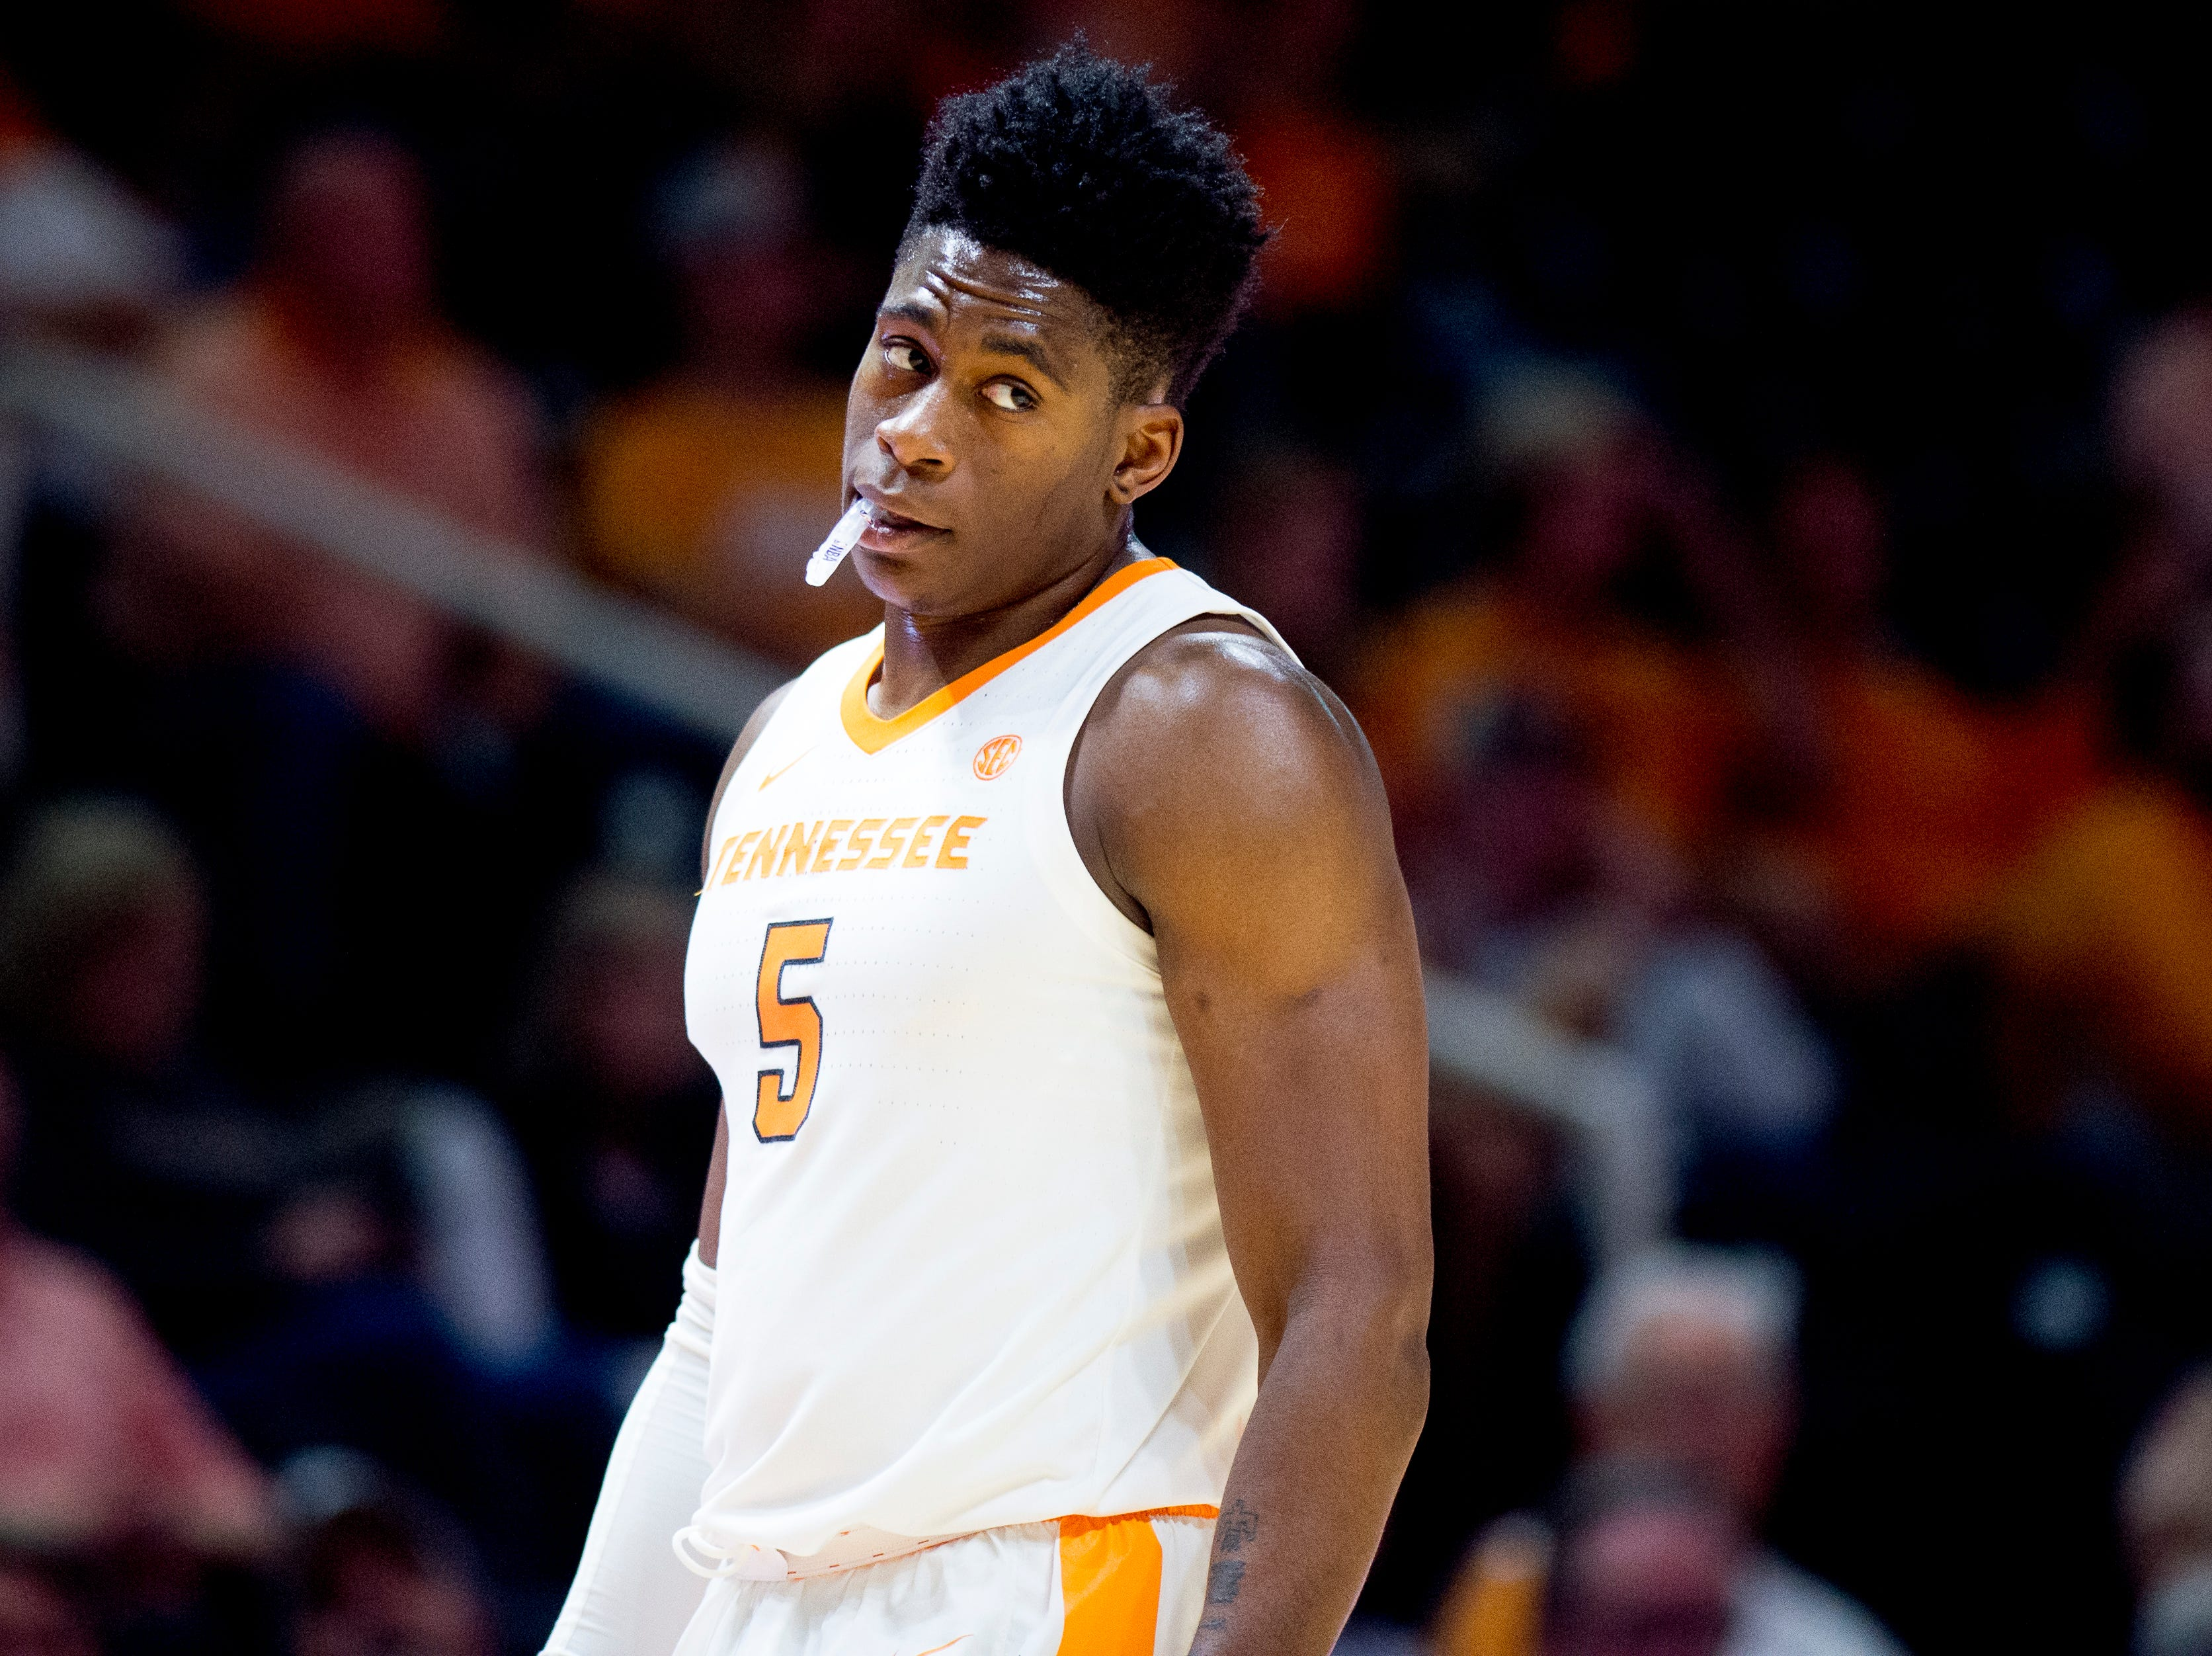 Tennessee guard Admiral Schofield (5) walks on the court during a game between Tennessee and Tusculum at Thompson-Boling Arena in Knoxville, Tennessee on Wednesday, October 31, 2018.